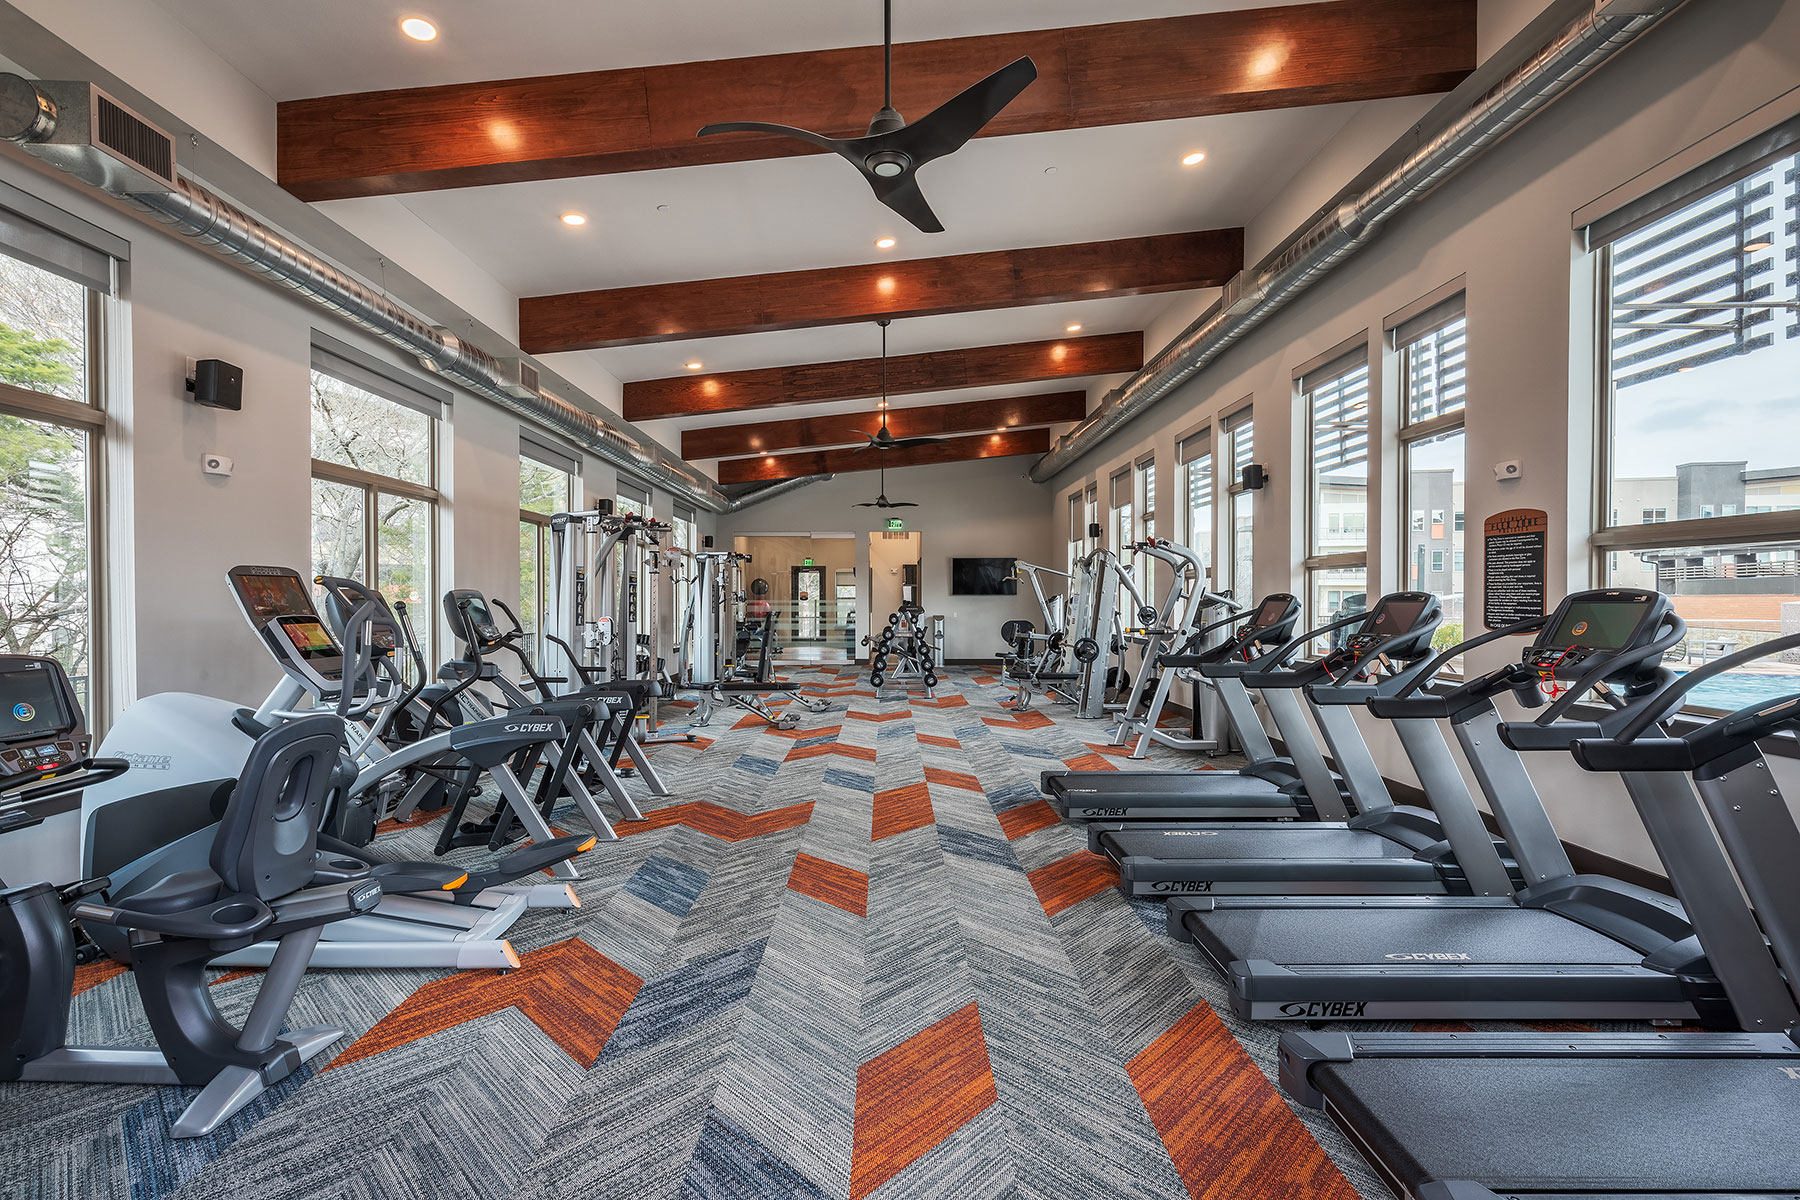 Wide shot of the fitness center with a variety of cardio machines, free weights, wall mounted TV and windows outlooking to the pool.